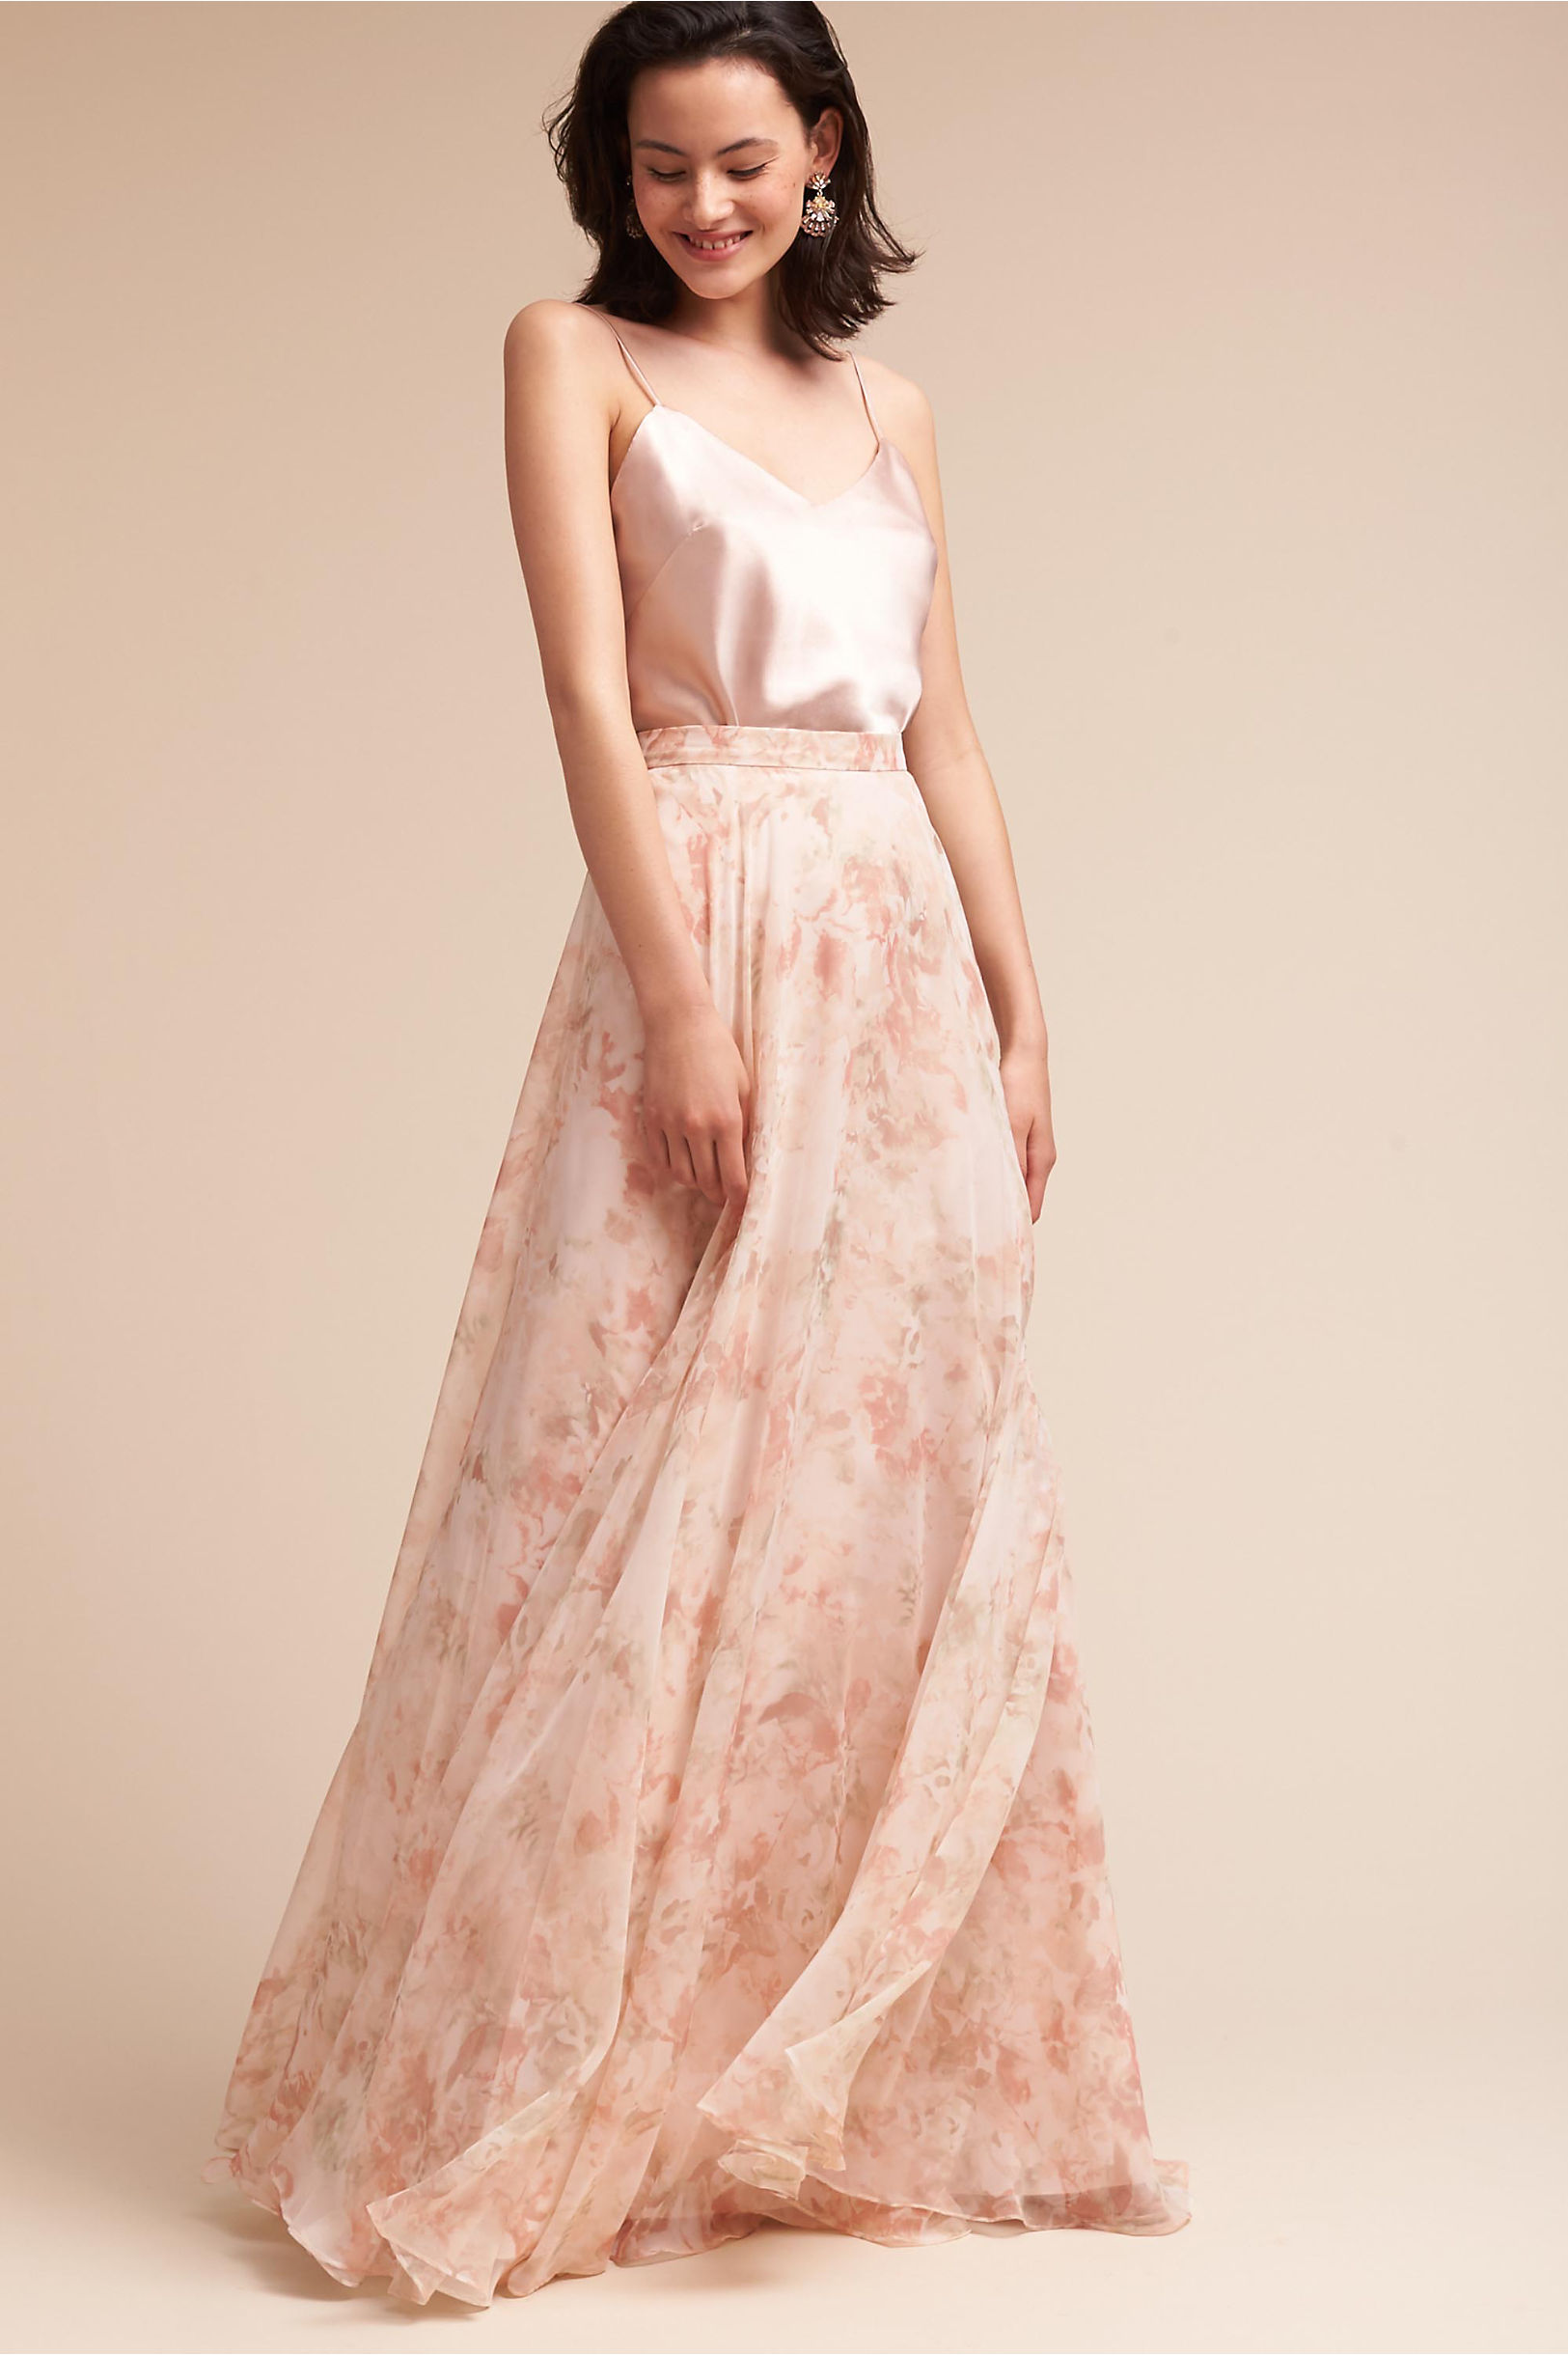 Blush Colored & Light Pink Bridesmaid Dresses | BHLDN